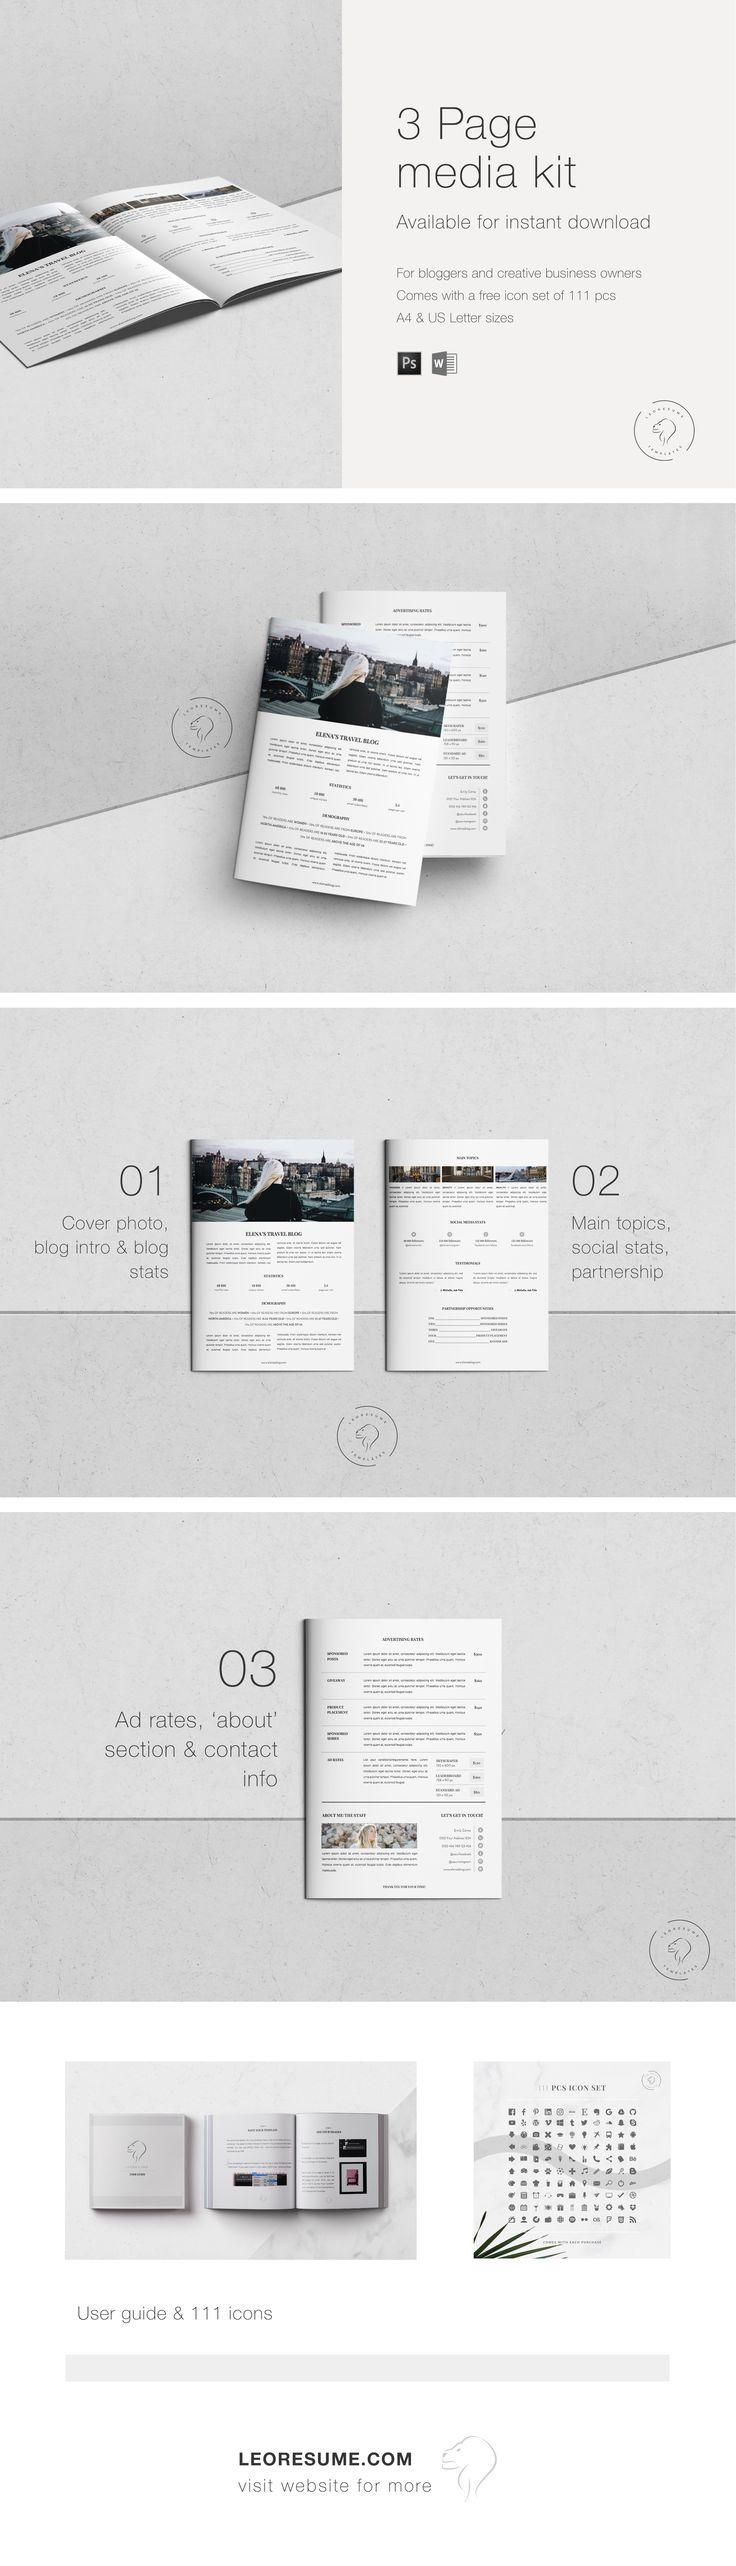 Social Media Kit | Media Kit for Bloggers | Blog Media Kit | #Photoshop and MS Word #templatesale | #Template